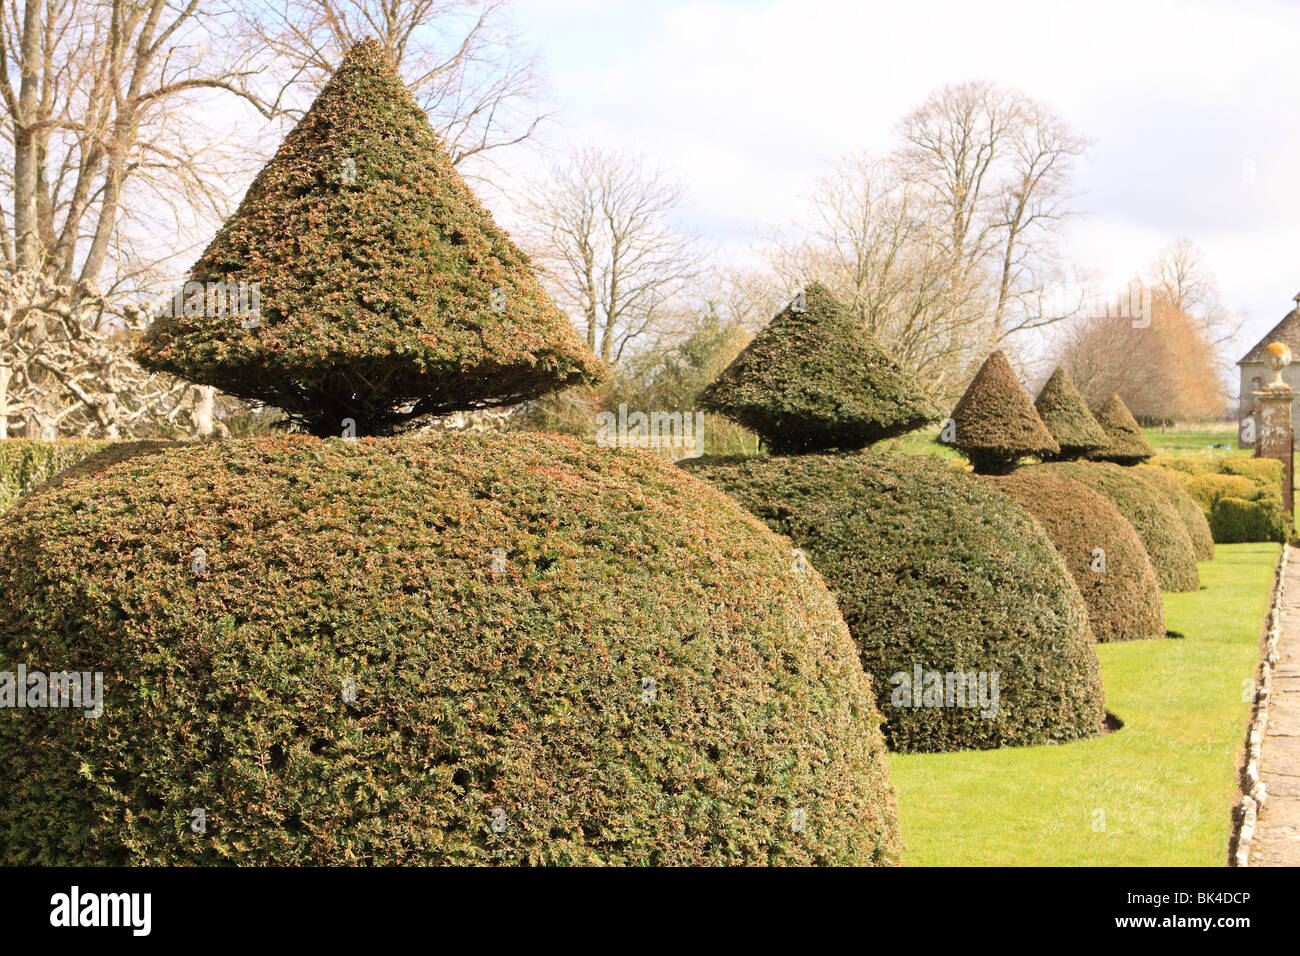 Topiary yew bushes shaped in formal garden - Stock Image